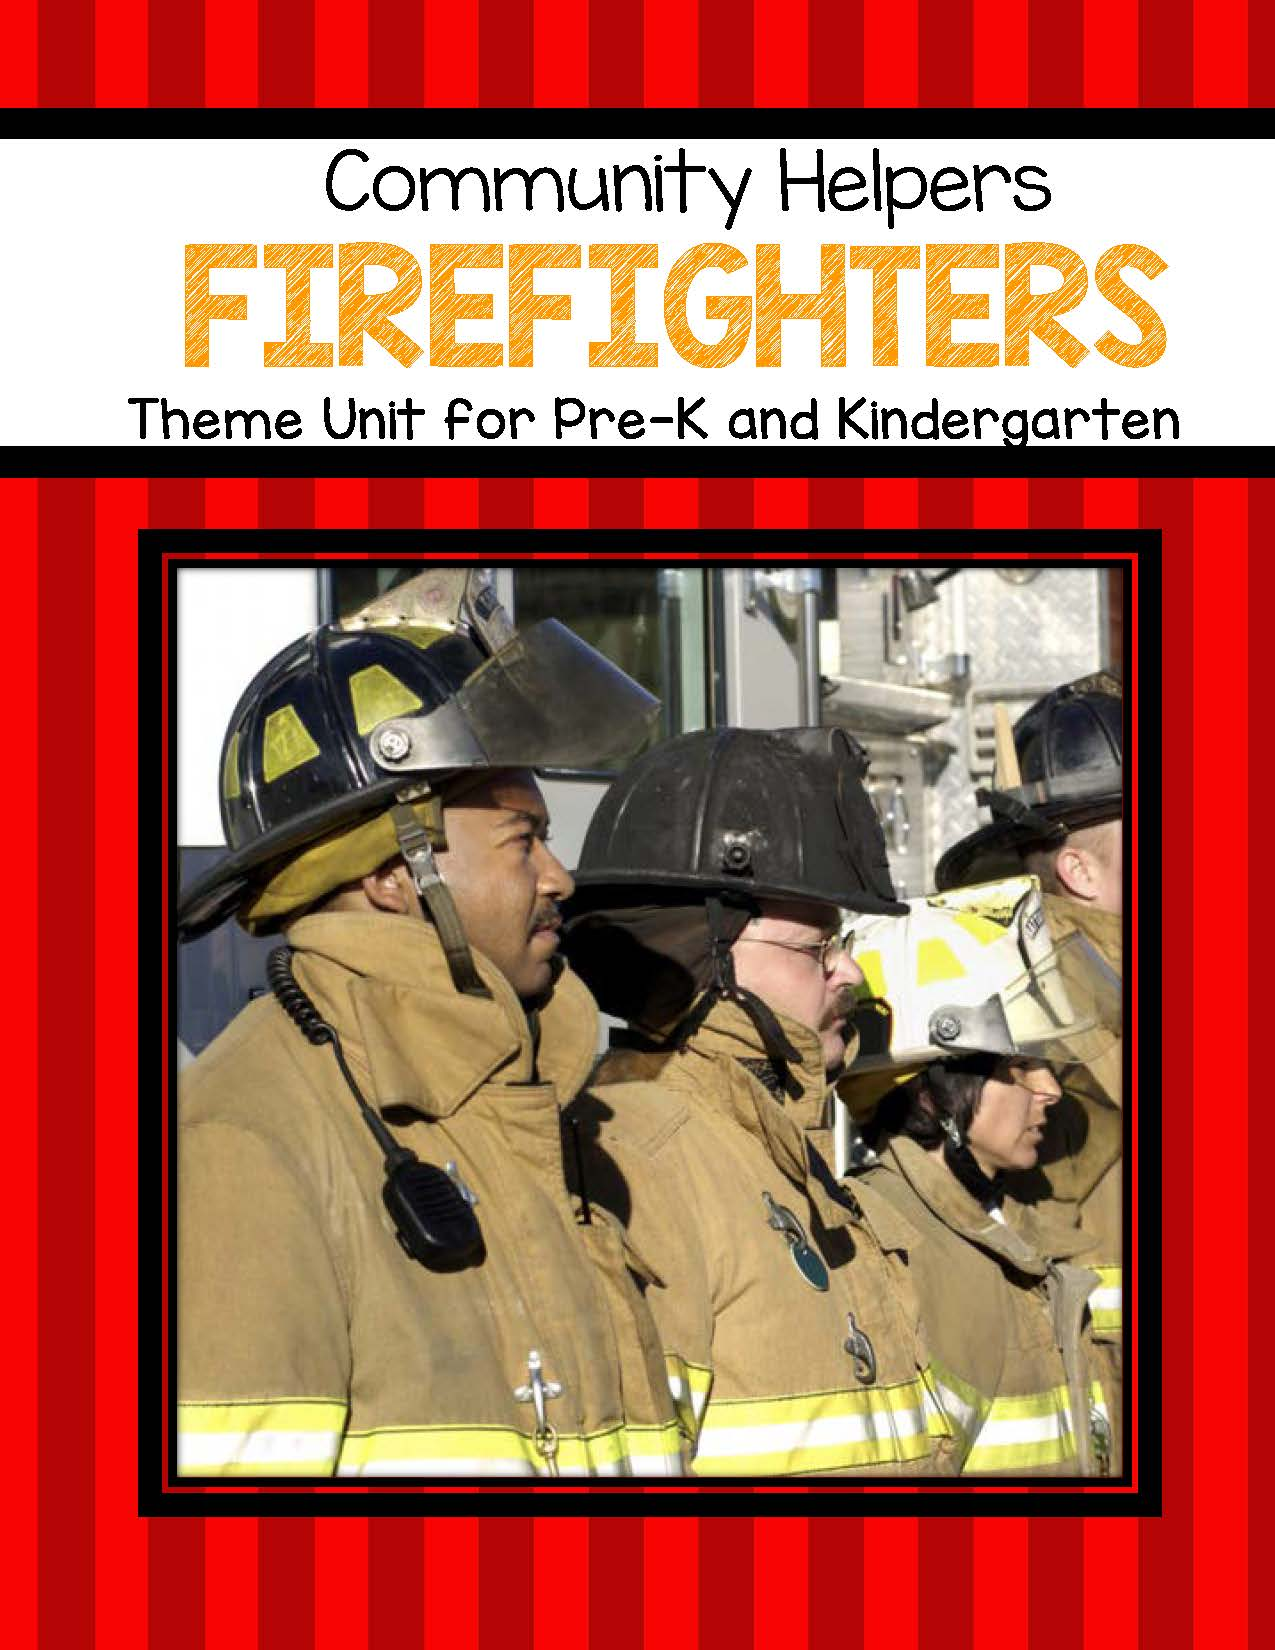 Firefighters Theme Unit For Preschool And Kindergarten